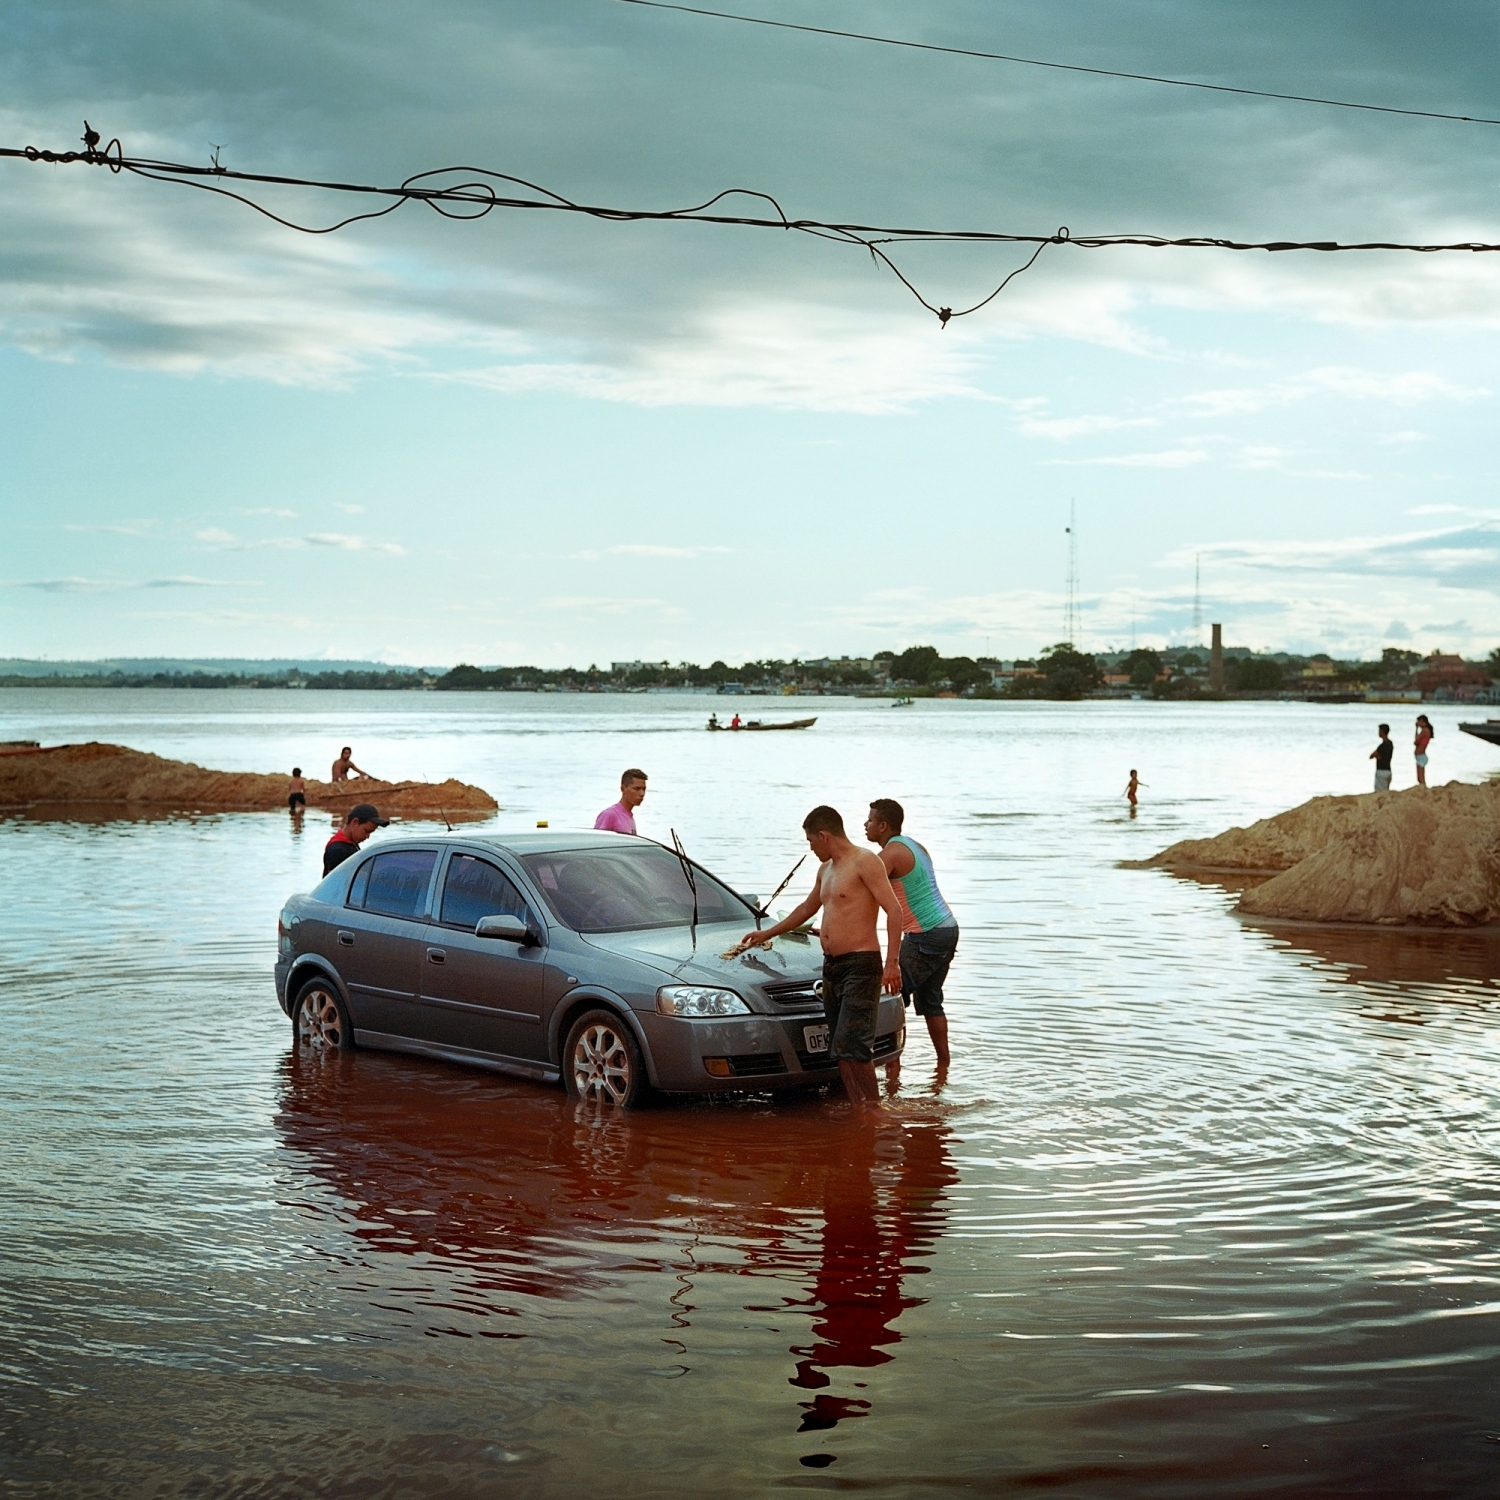 2014. Men wash their car in the high waters of the Xingu River in the city of Altamira, Brazil. Money and people poured into the city with the arrival of thousands of workers to build the Belo Monte Dam. The population exploded and the economy boomed, but today with the completion of the major construction, the people and money are leaving and economic hardship is settling in. /Aaron Vincent Elkaim